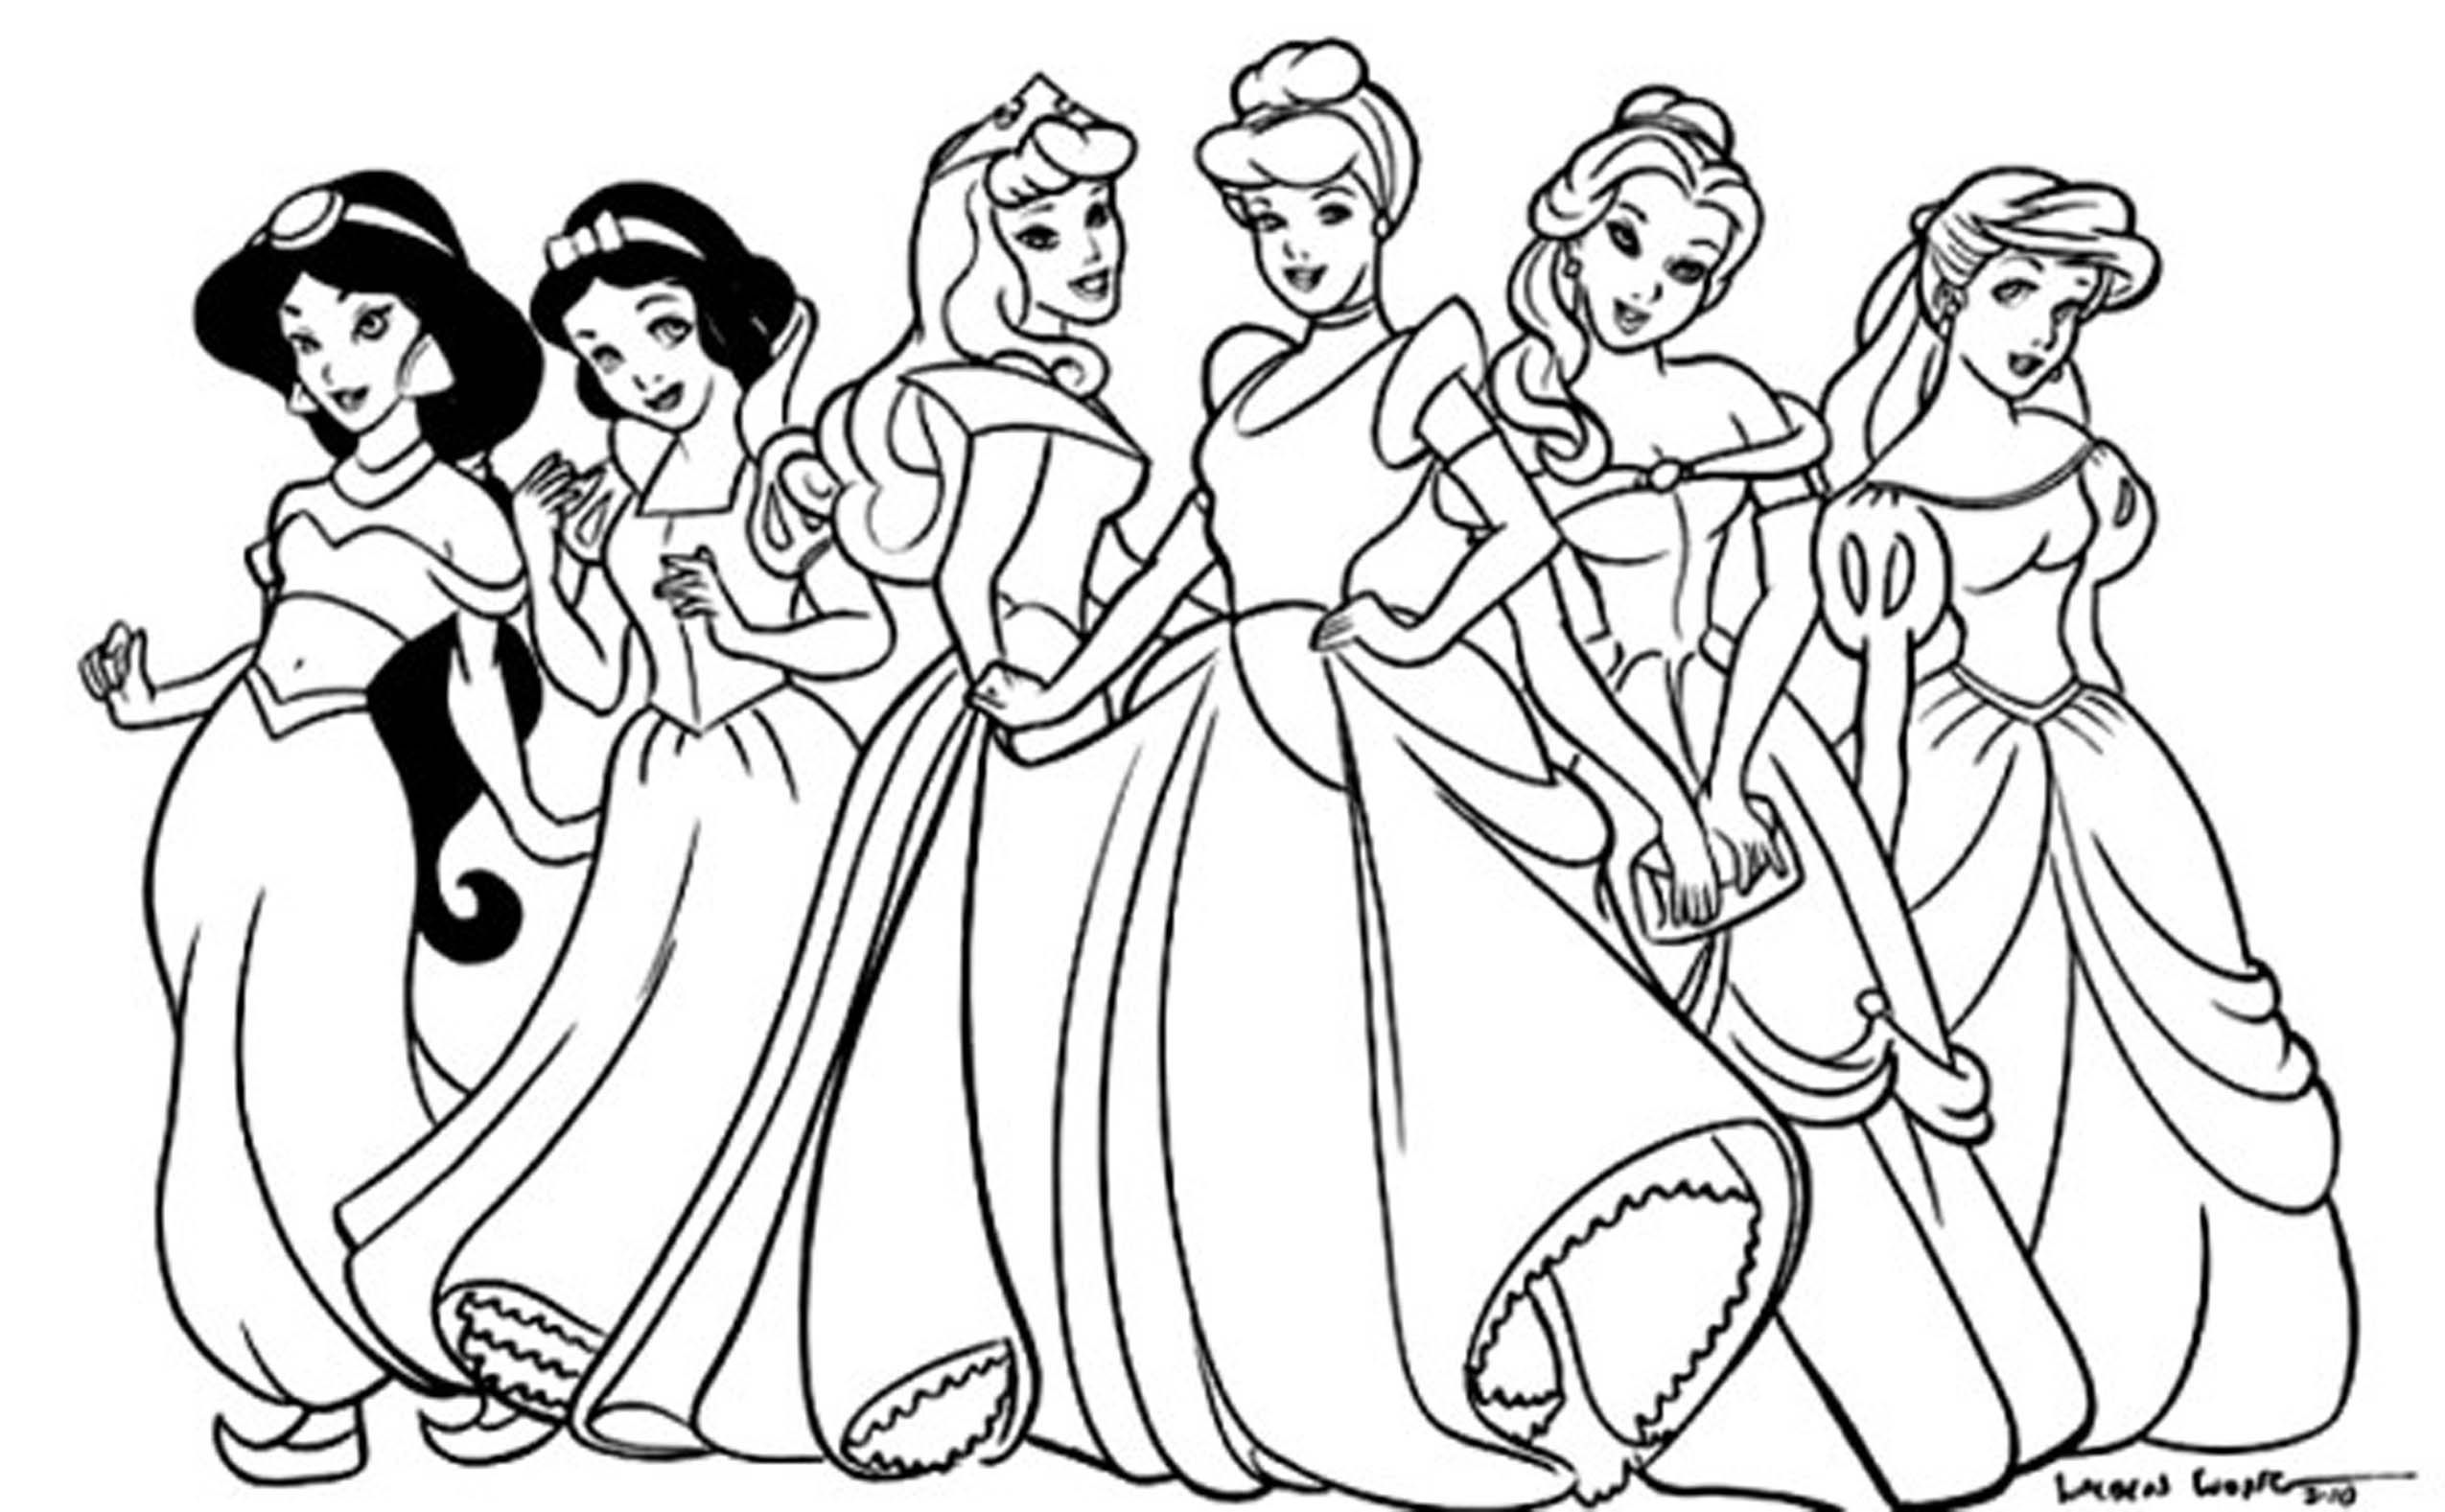 Disney Princess Coloring Pages Printable Kids Colouring Pages Princess Coloring Pages Disney Princess Coloring Pages Belle Coloring Pages